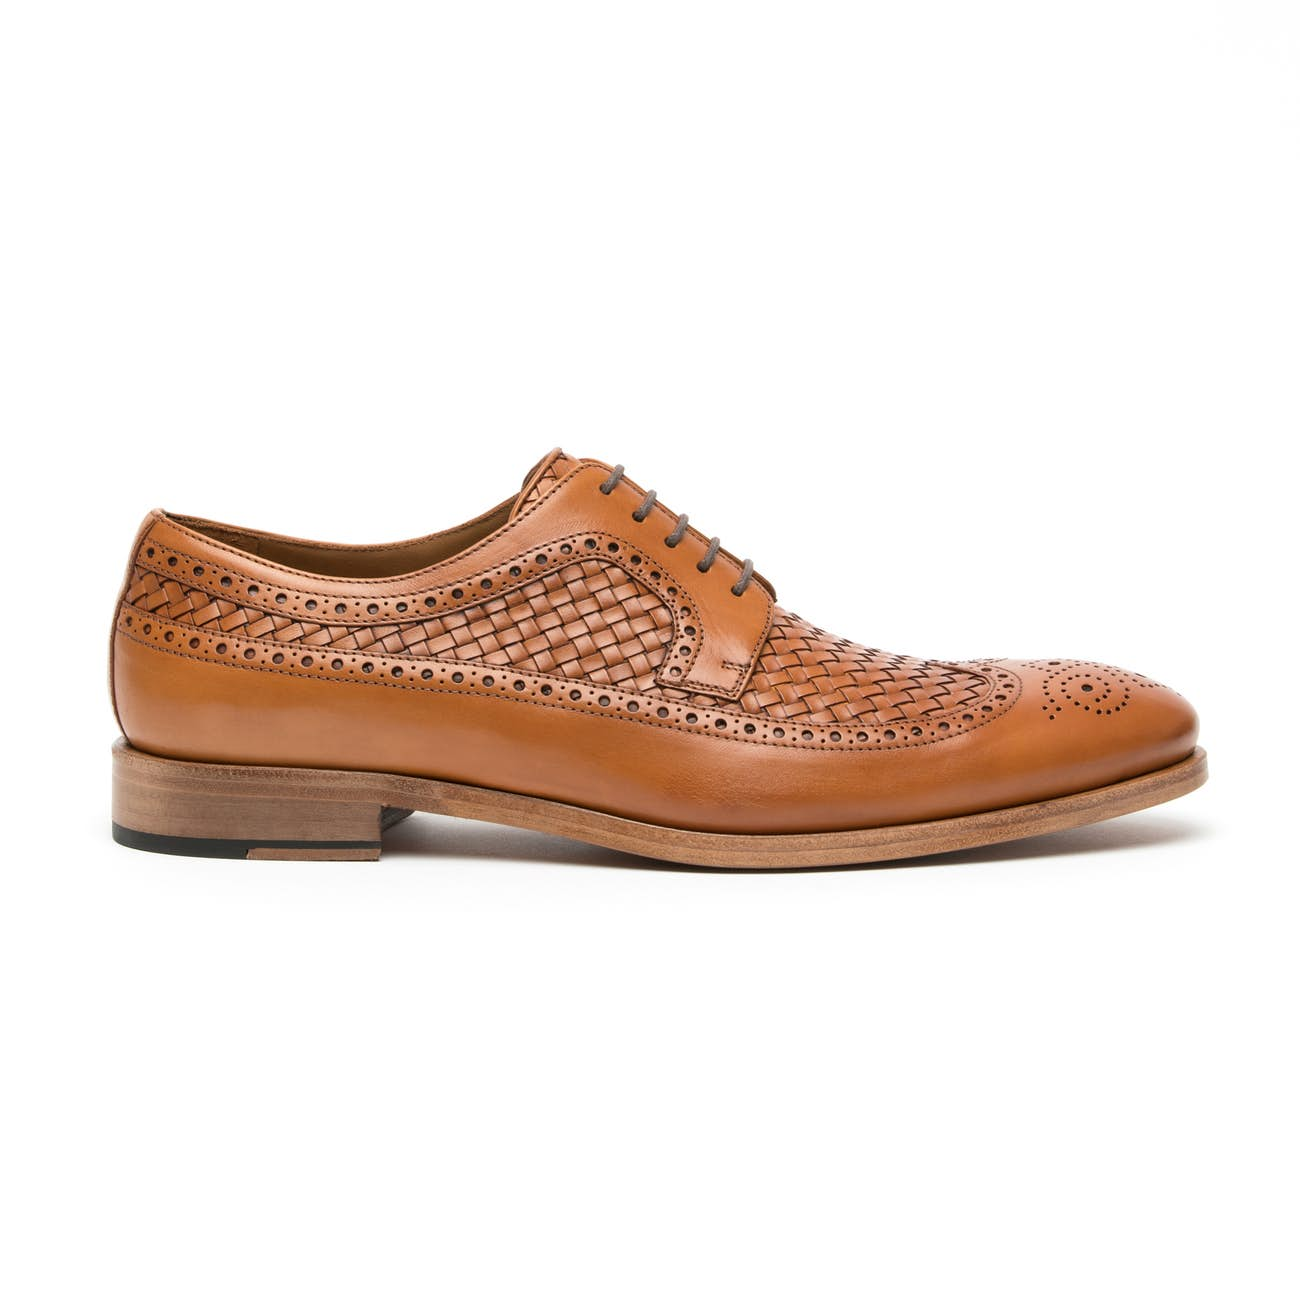 Taft Preston Longwing Brogue Profile-Shot